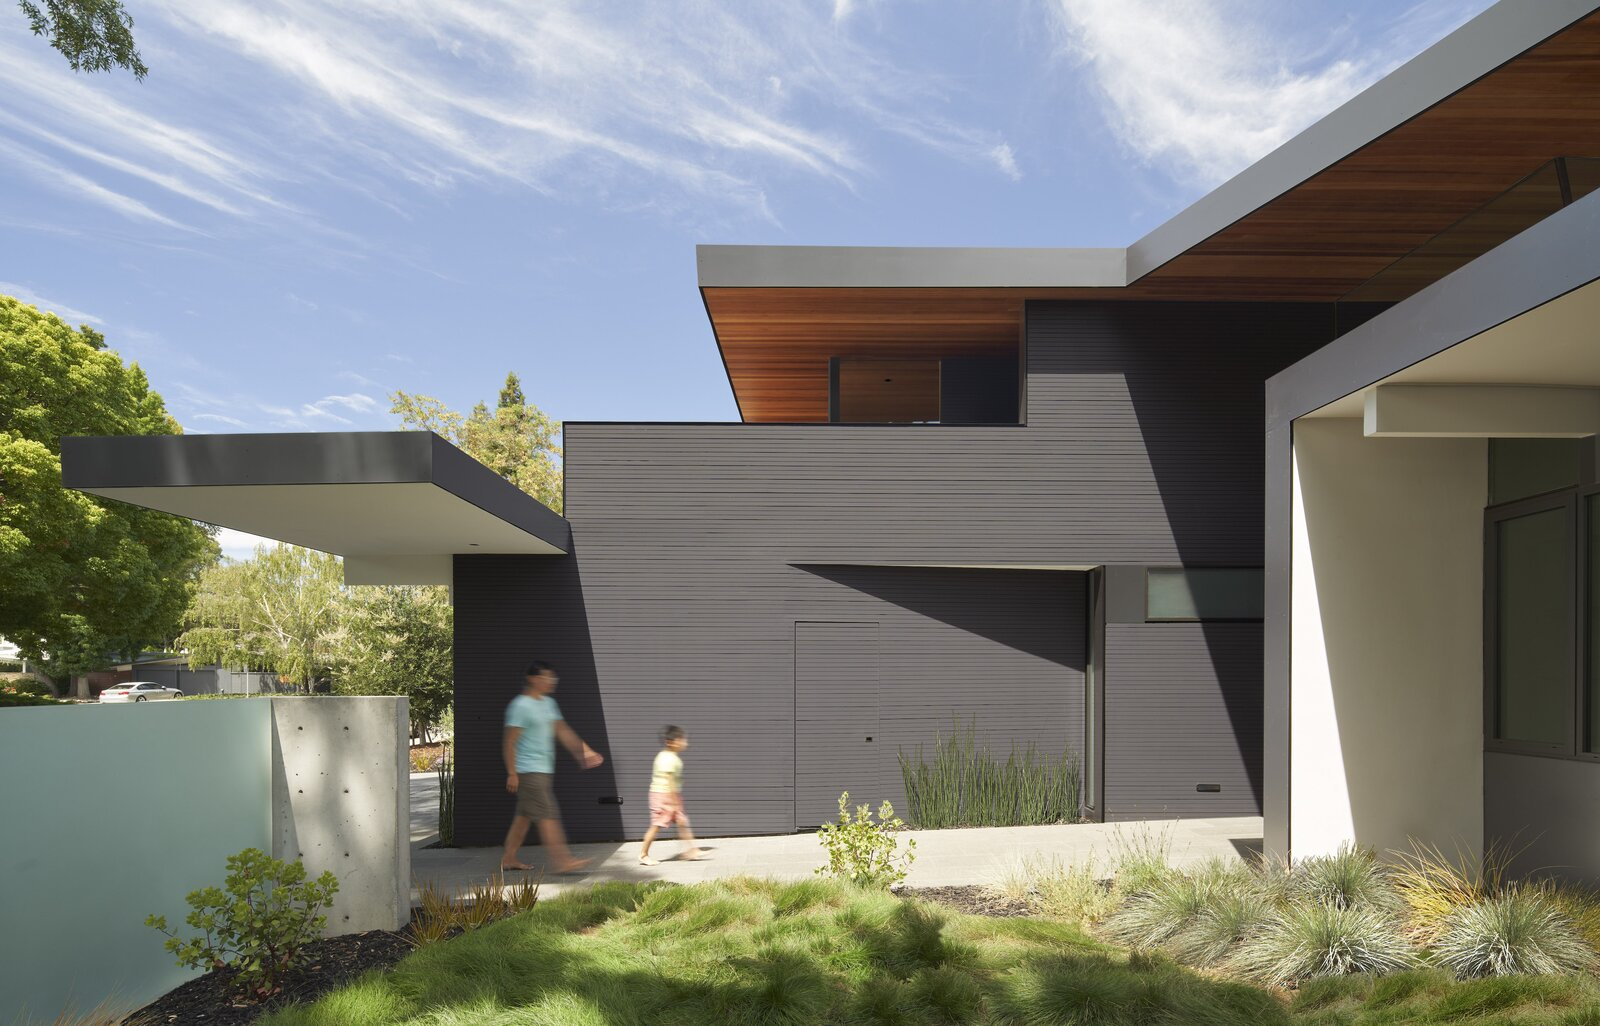 Photo 4 of 11 in Edgewood House by Terry & Terry Architecture